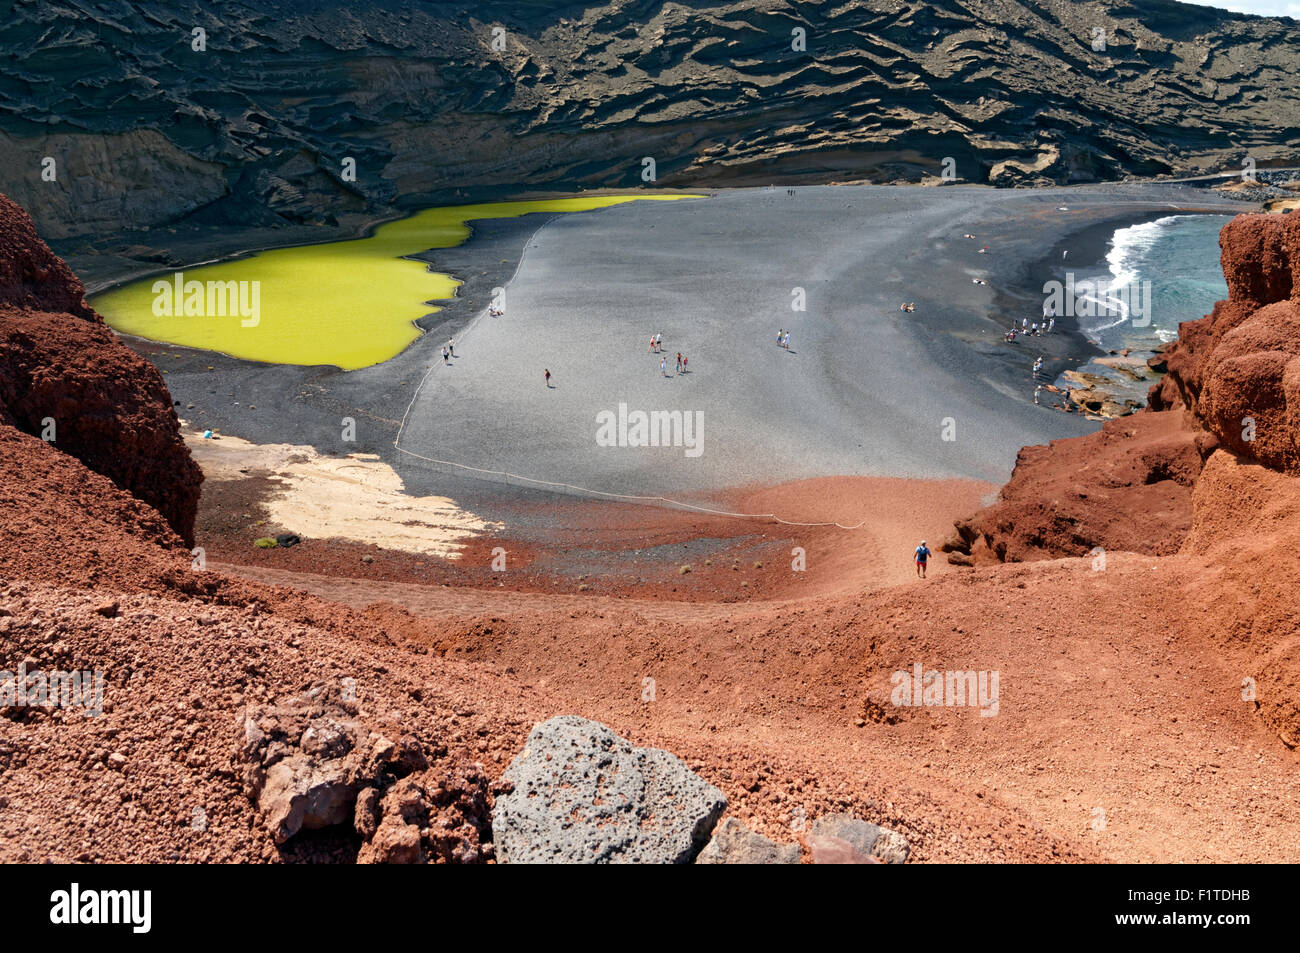 El Golfo, Lanzarote, Canary Islands, Spain. - Stock Image